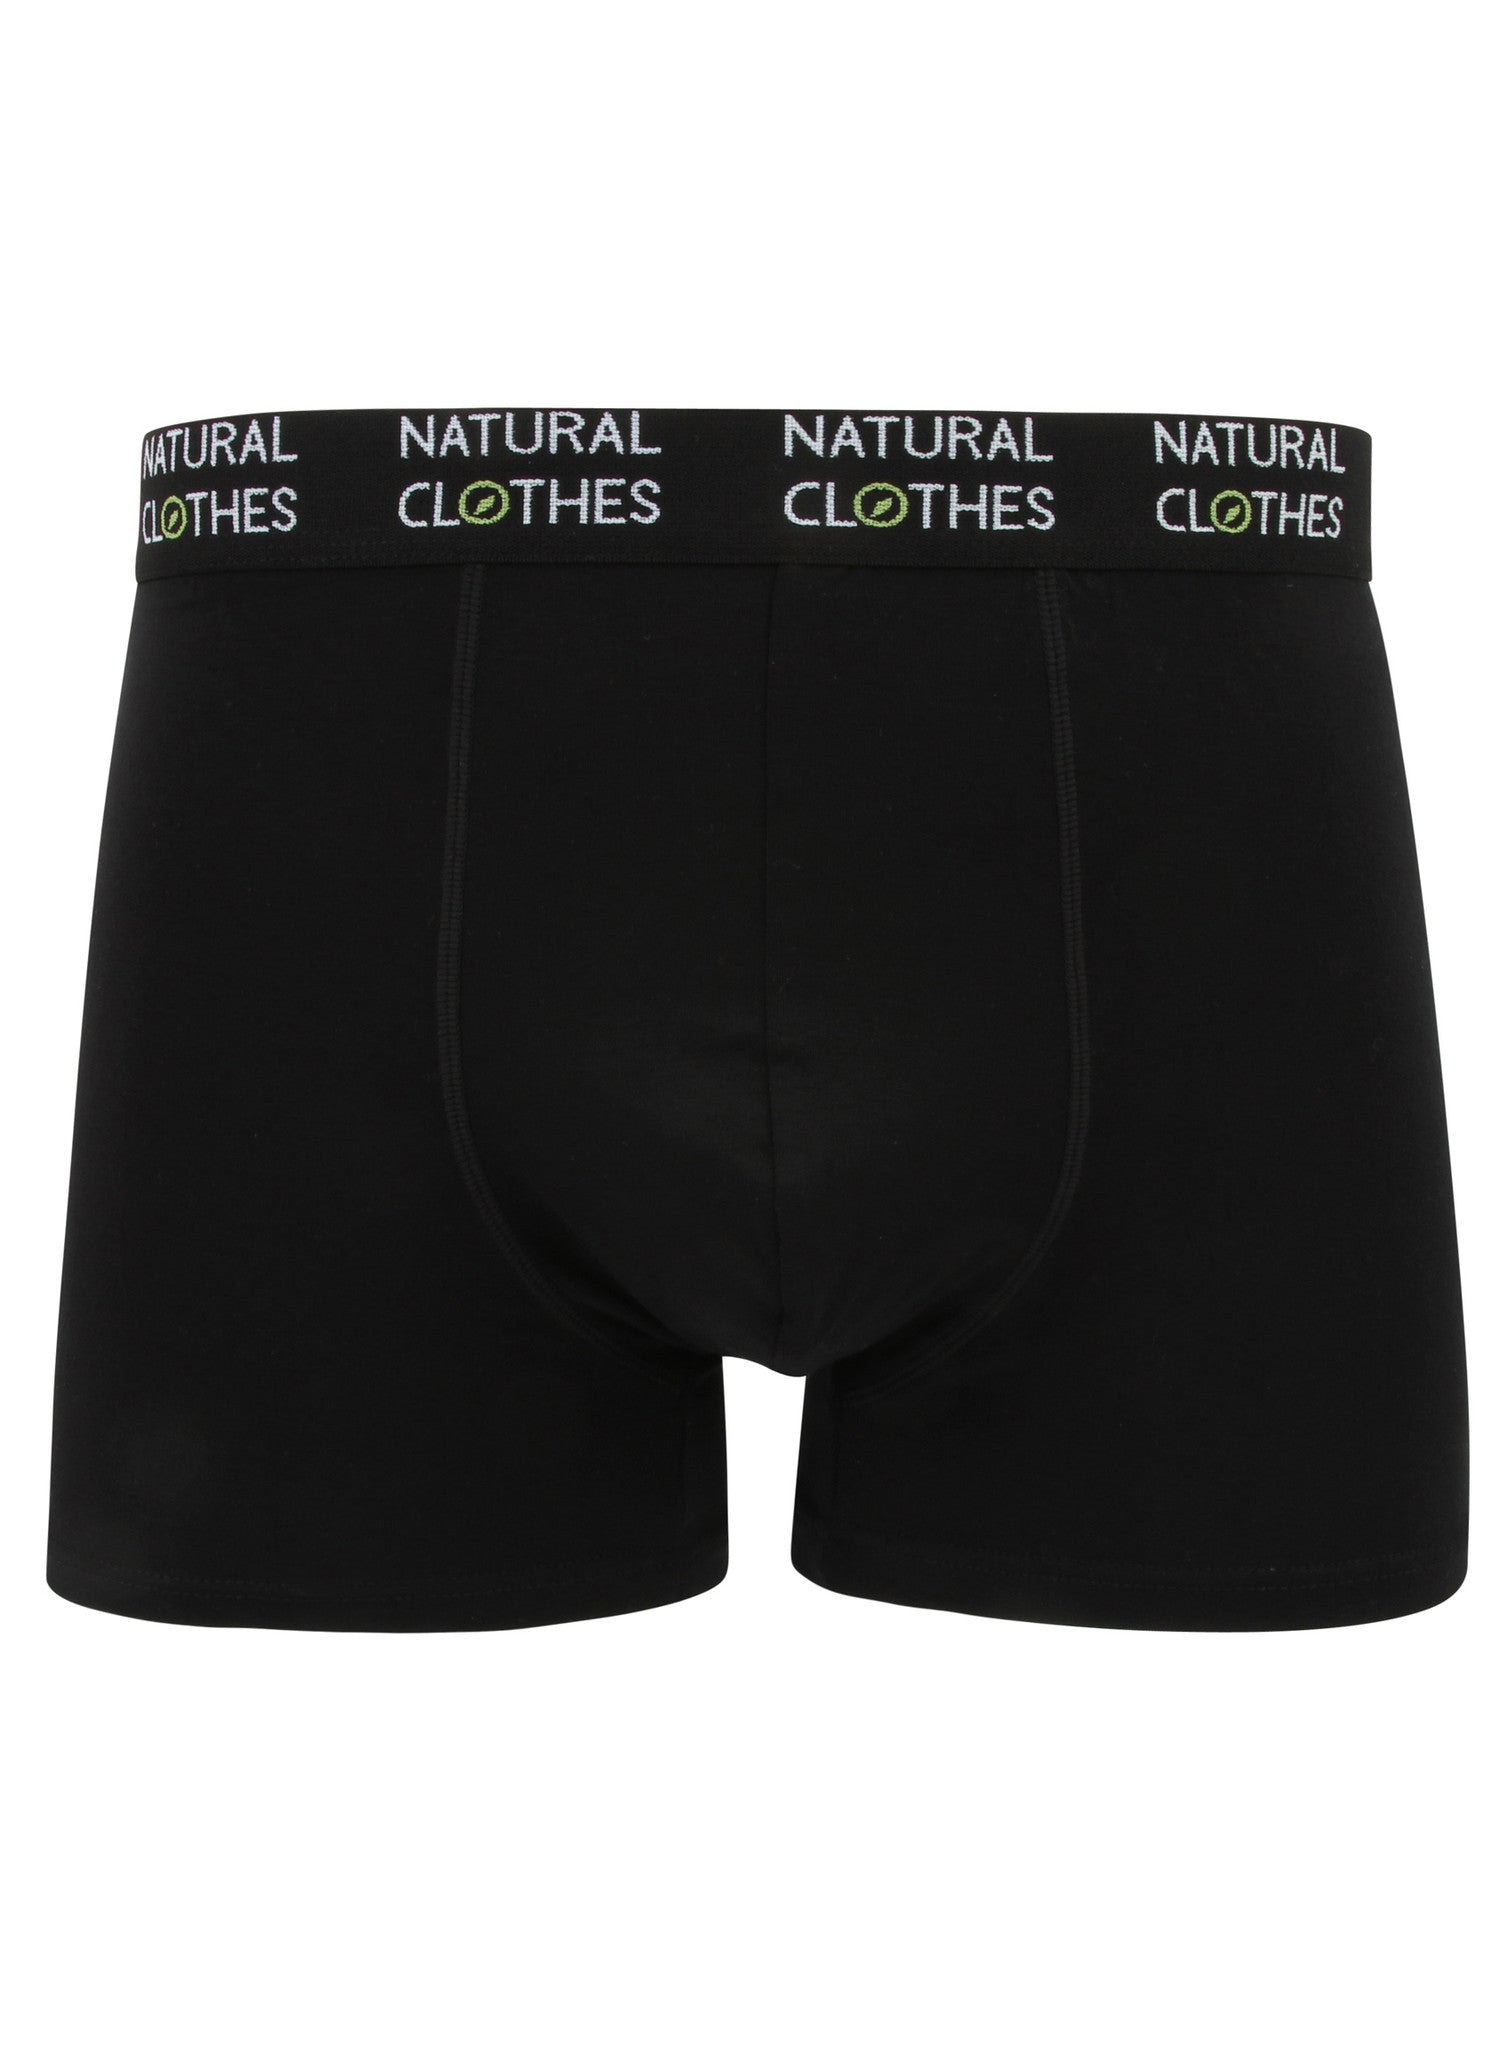 Bamboo Boxer Trunks Black - Natural Clothes Bamboo Clothing & Accessories for Men & Women